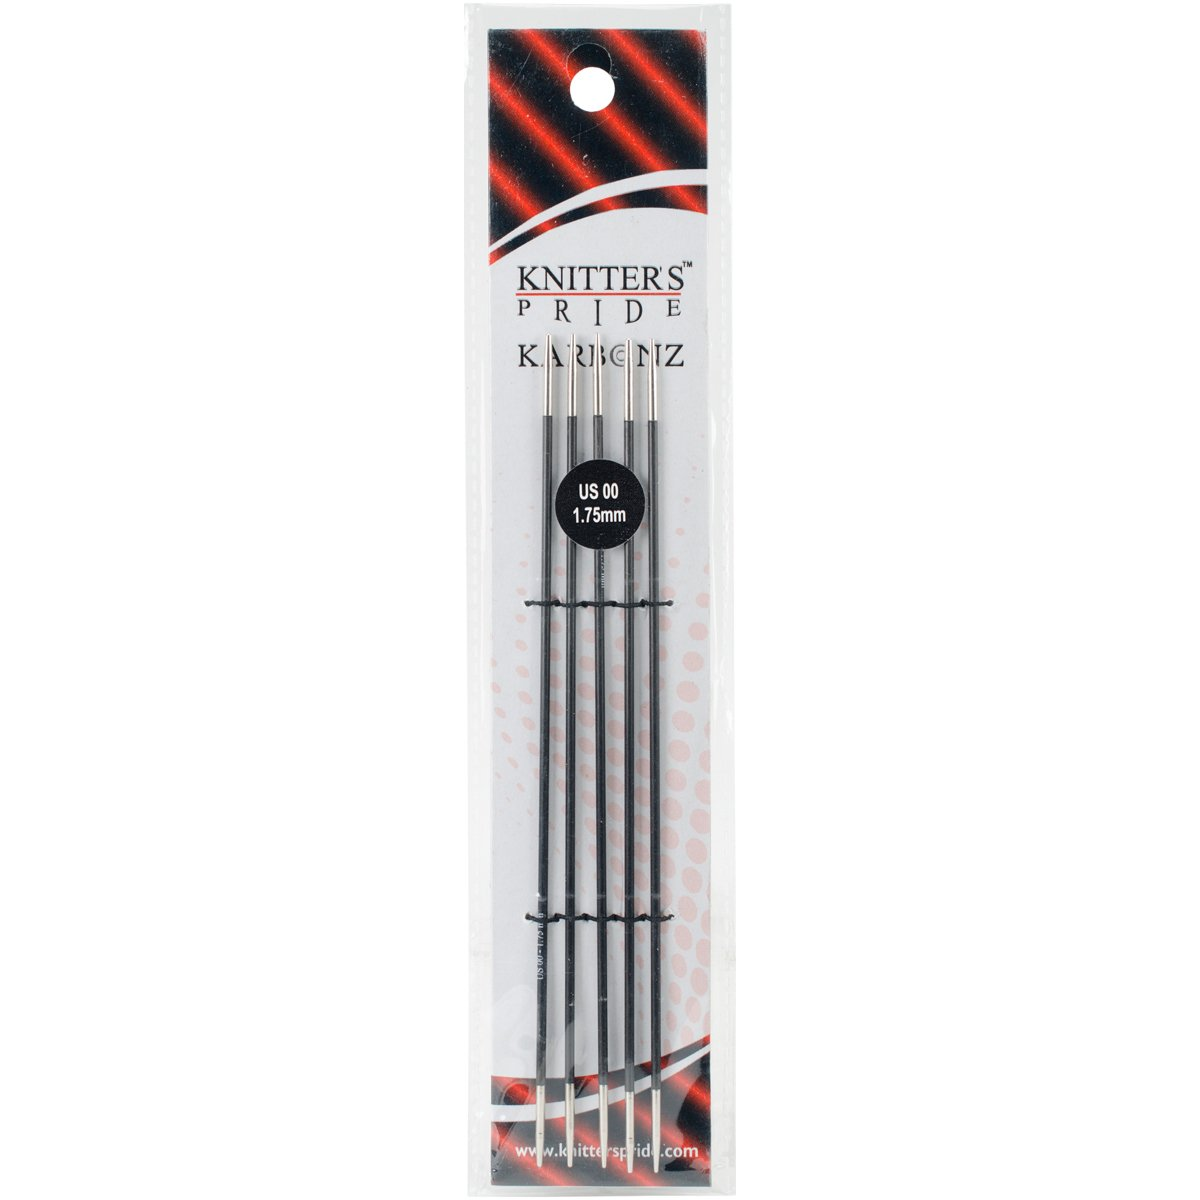 3.00mm 110109 Knitters Pride Karbonz Double Pointed 6 inch 15cm Knitting Needles Size US 2.50